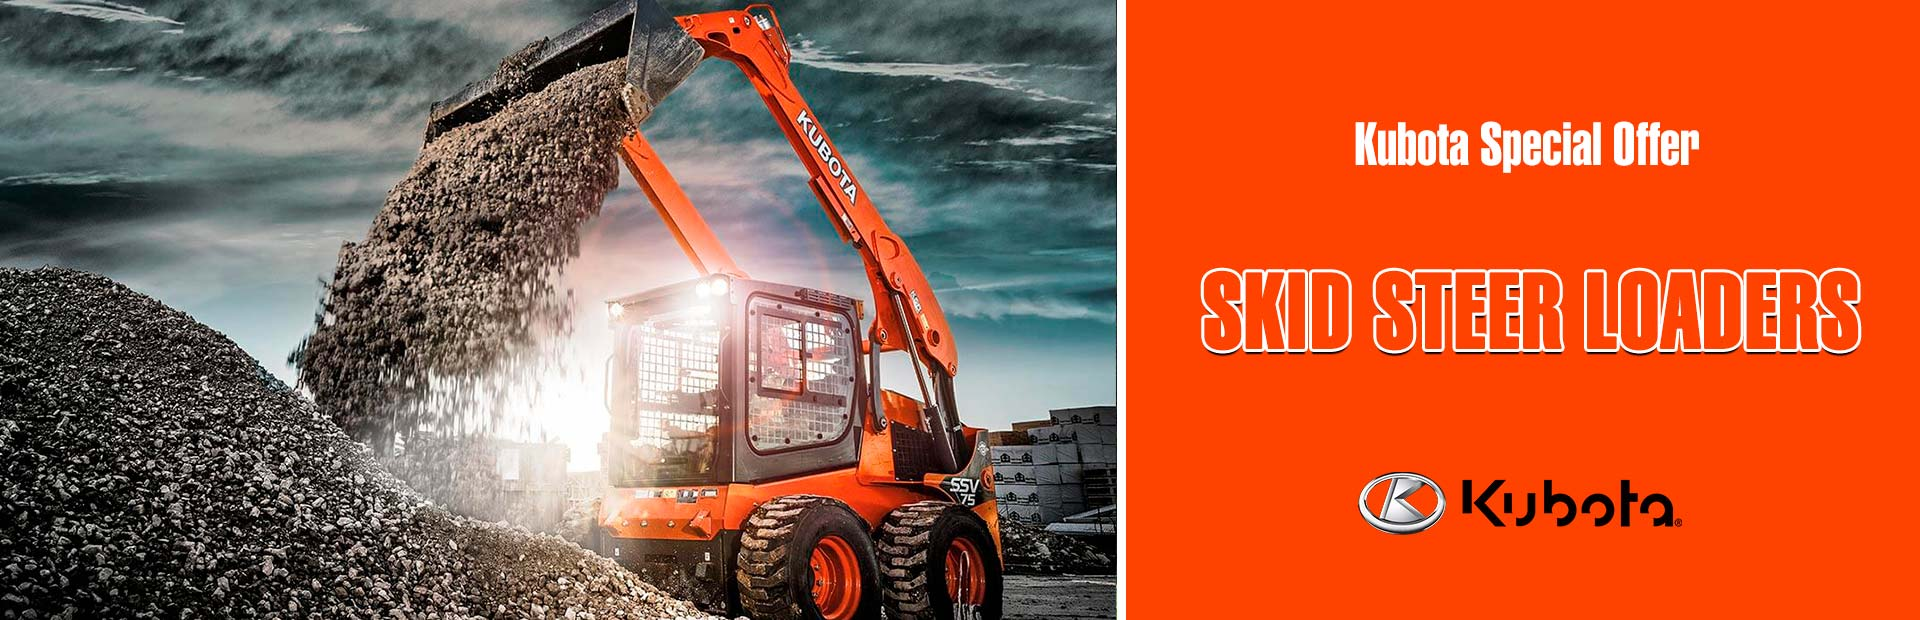 Kubota: Kubota Special Offer - Skid Steer Loaders